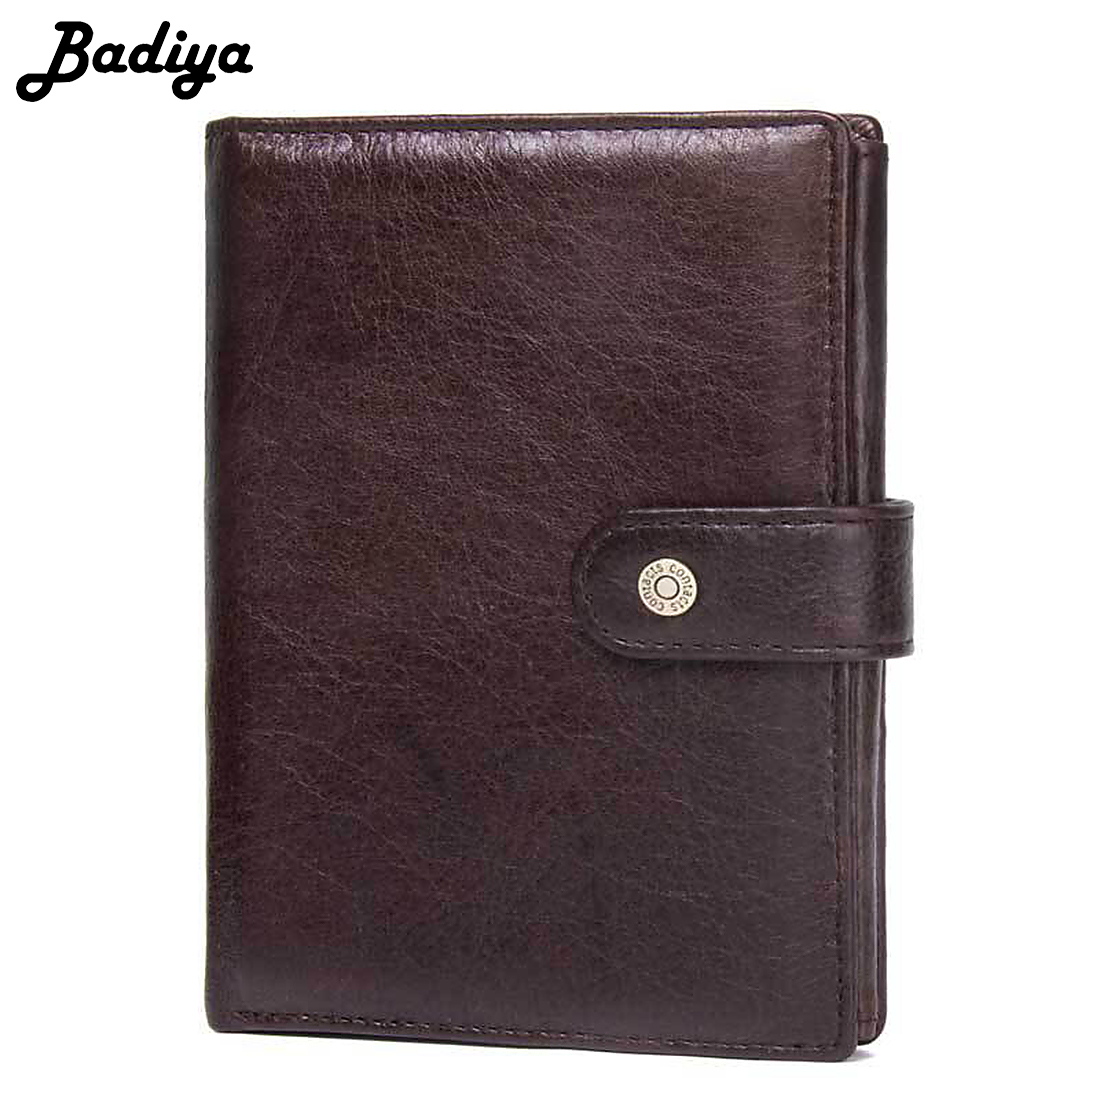 Vintage Men Genuine Leather Wallet Hasp Open Large Capacity Men Purse Card Holder Bifold Short Purse Clutch Coin Pocket Wallets dalfr men genuine leather wallets cowhide male long wallet vintage hasp style coin purse for men card holder with coin pocket